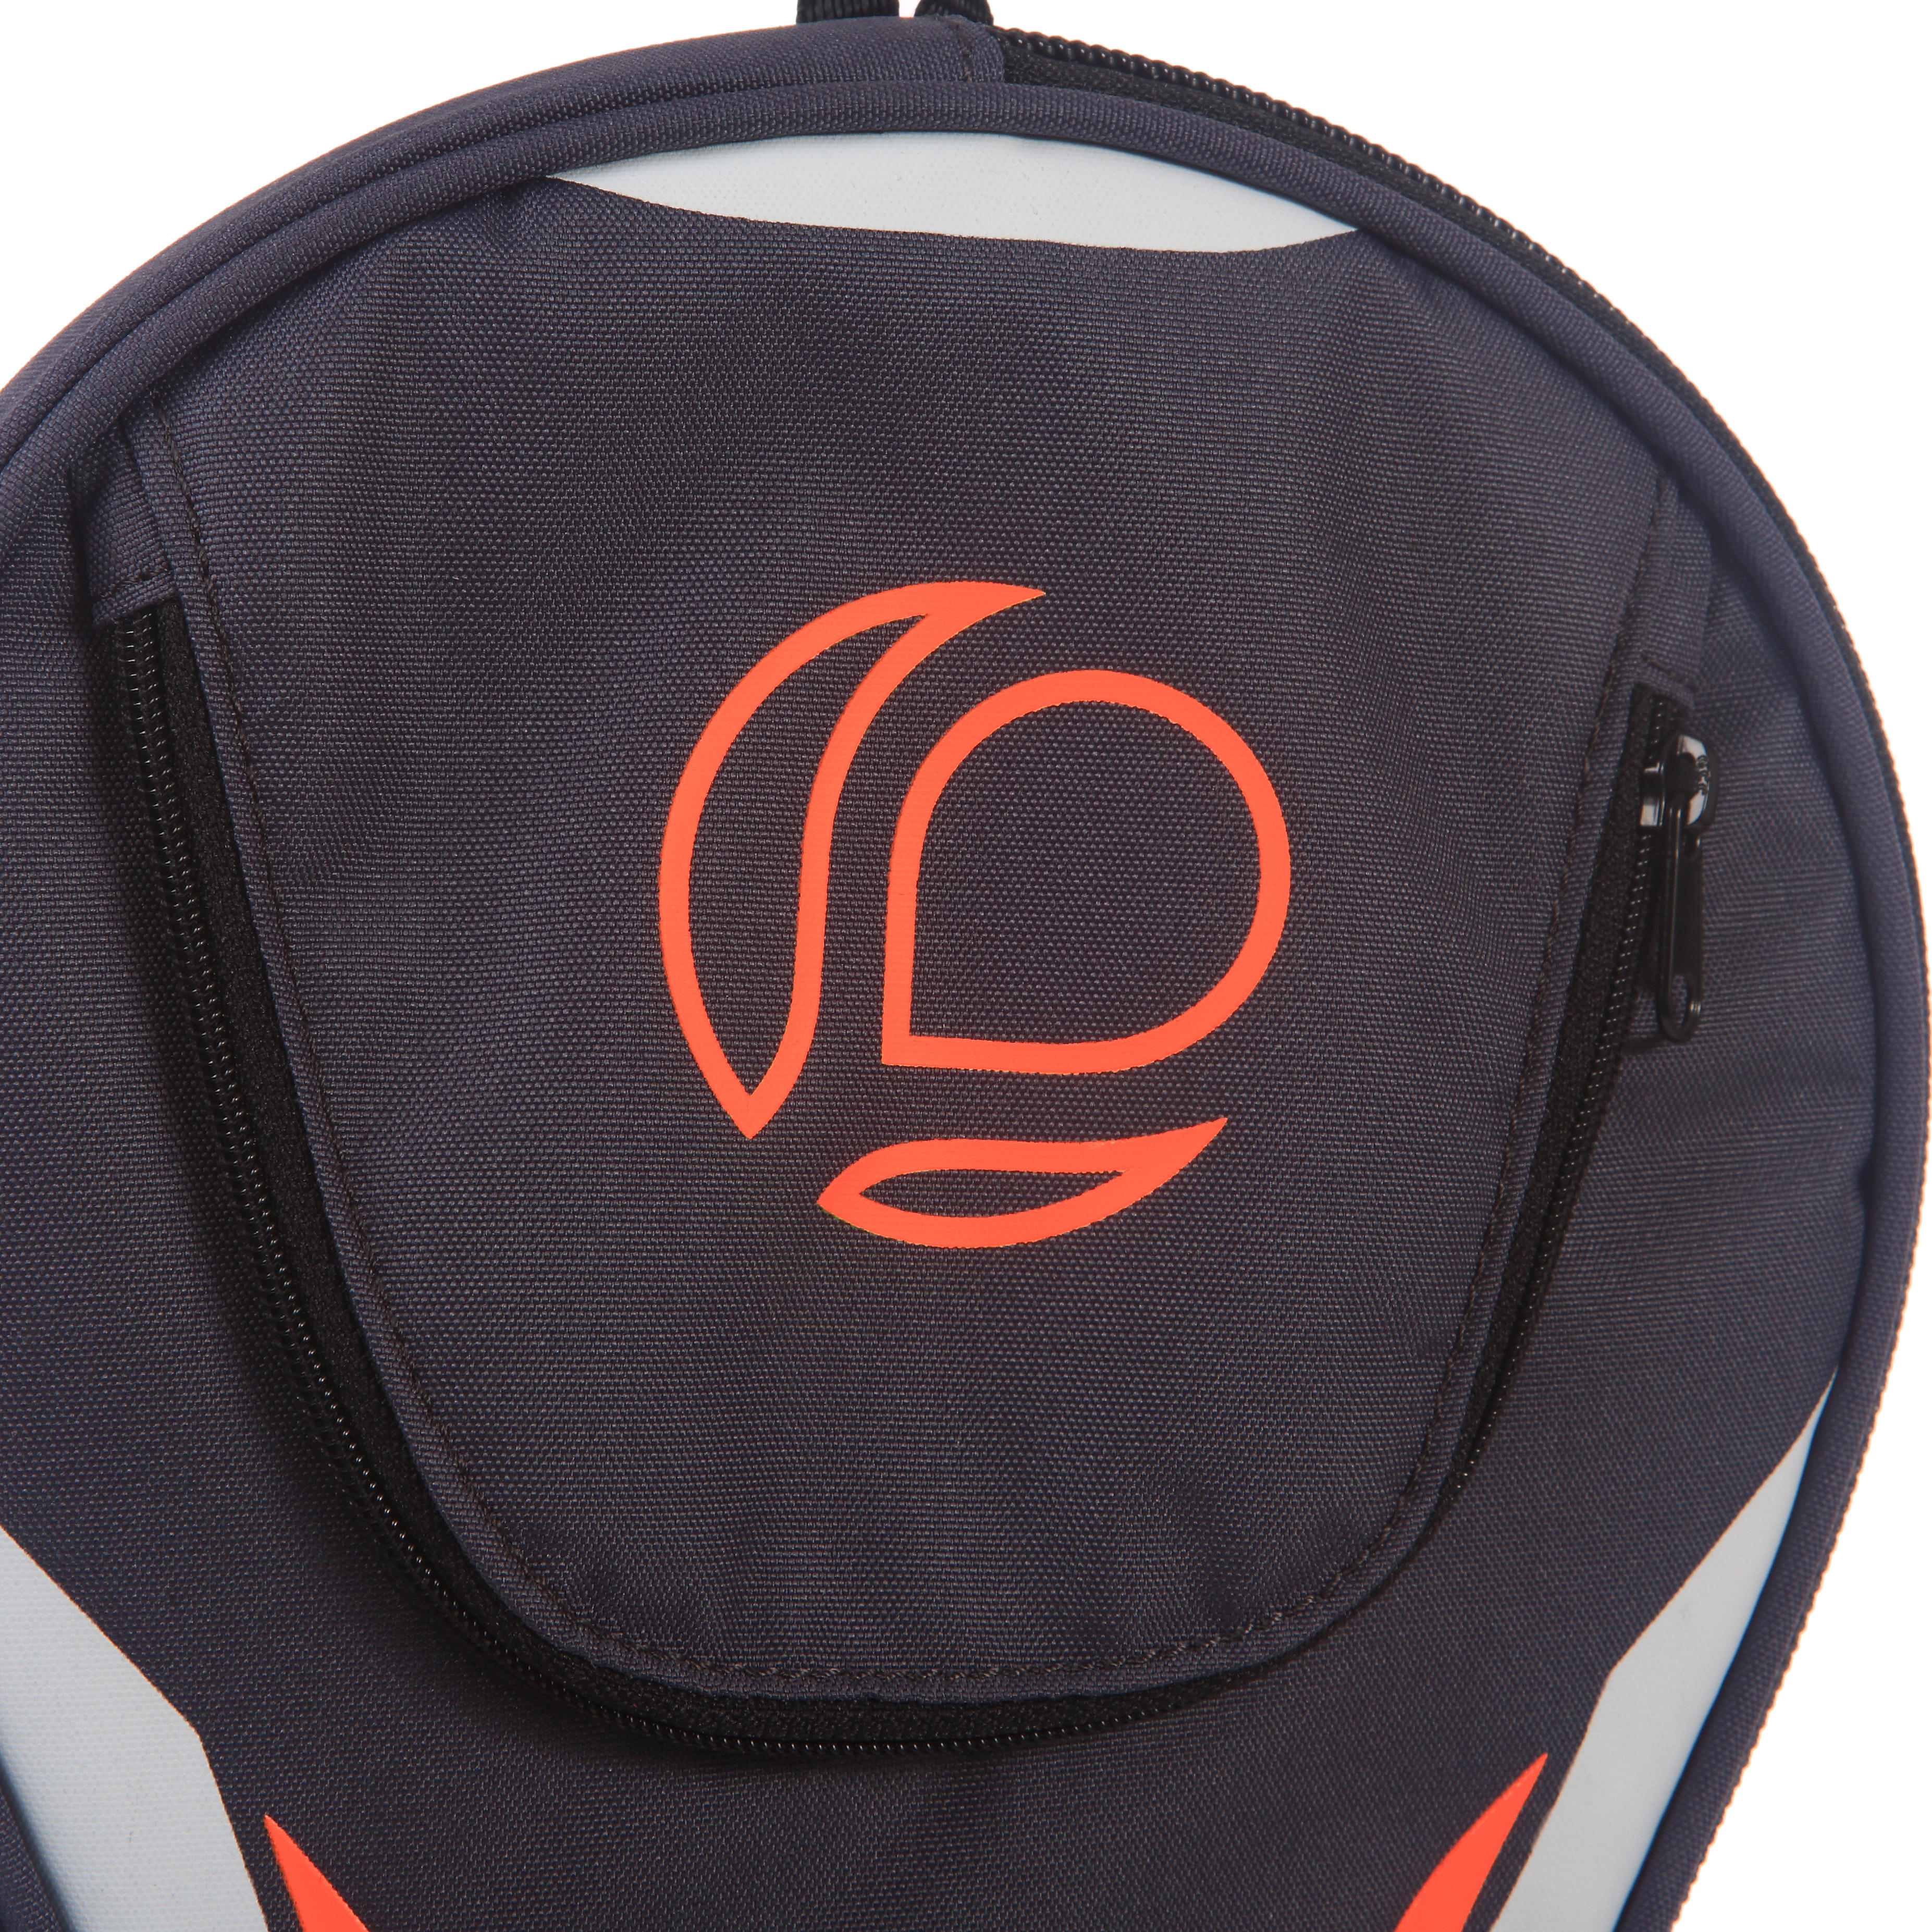 Table Tennis Racket Cover FC 710- Grey and Orange